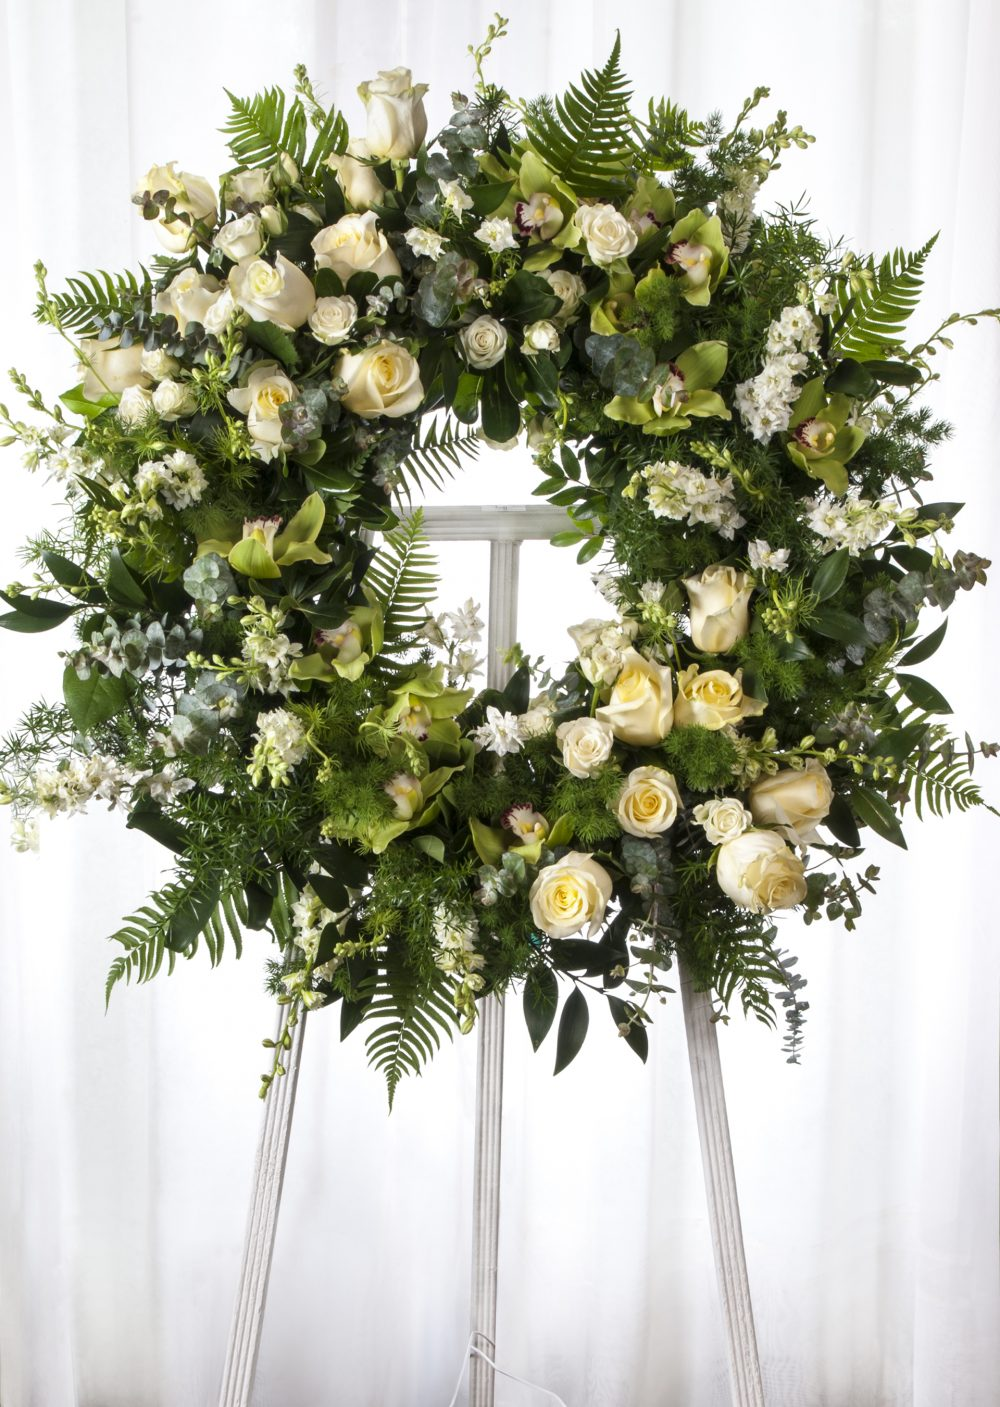 Unique beautiful funeral flower arranged in a lovely cut flower wreath, mounted on a wooden easel.